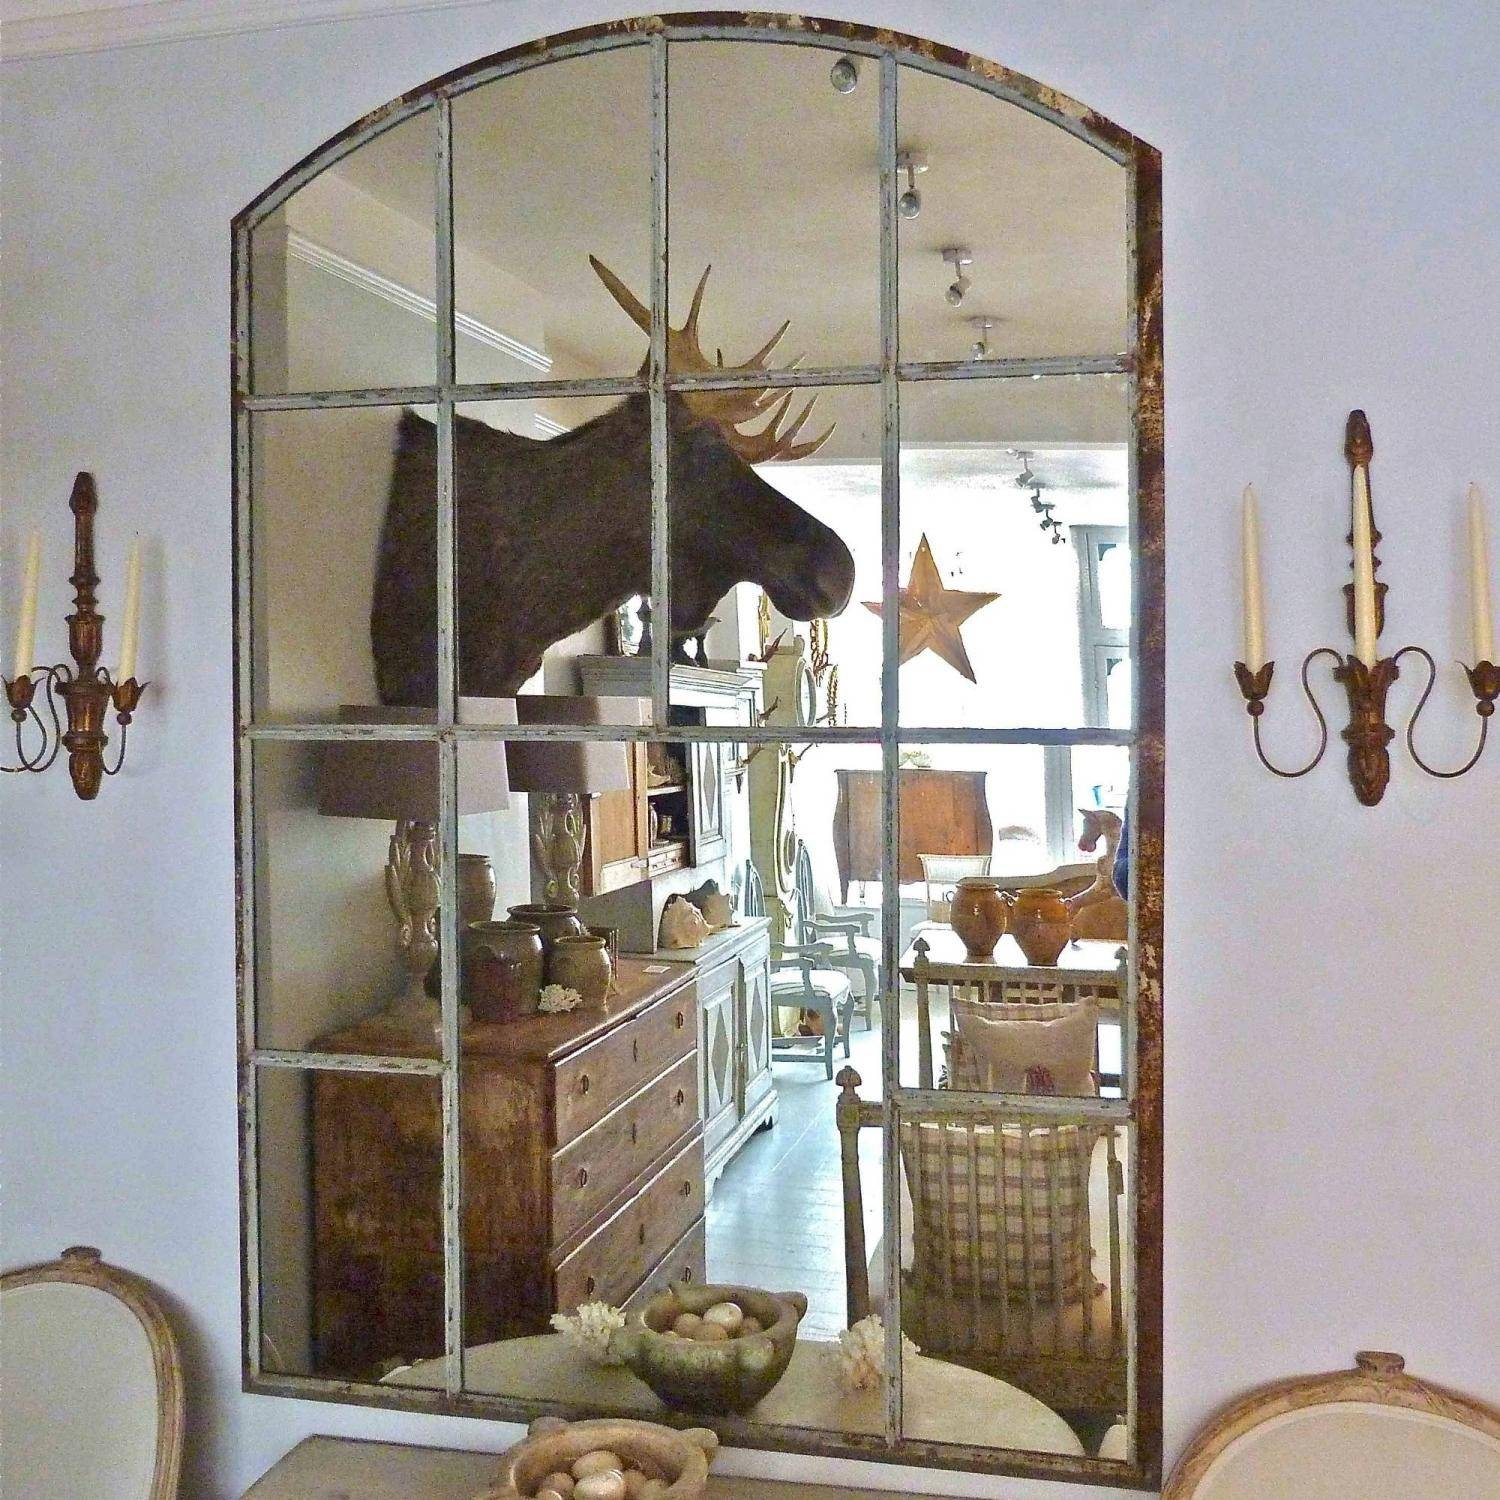 Large Cast Iron Slow Arched Window Frame Mirror In Mirrors within Large Arched Window Mirrors (Image 10 of 15)